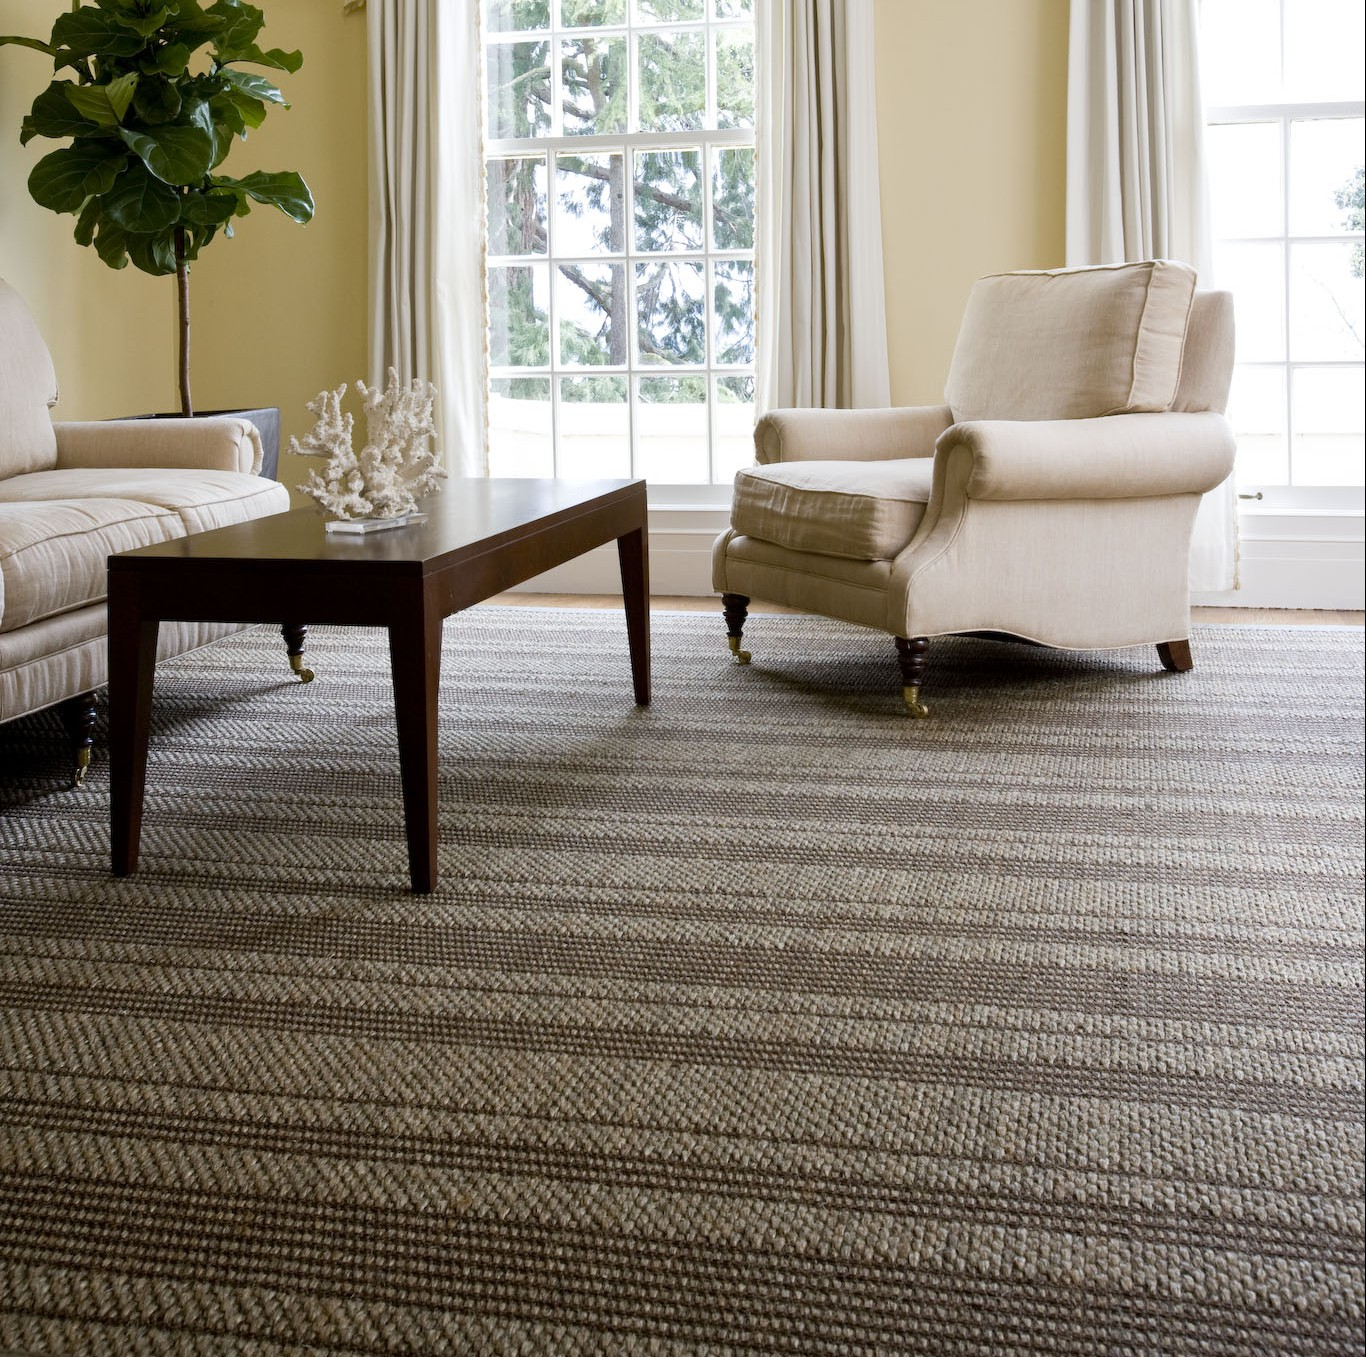 Sisal - what is it and what is it for? 6